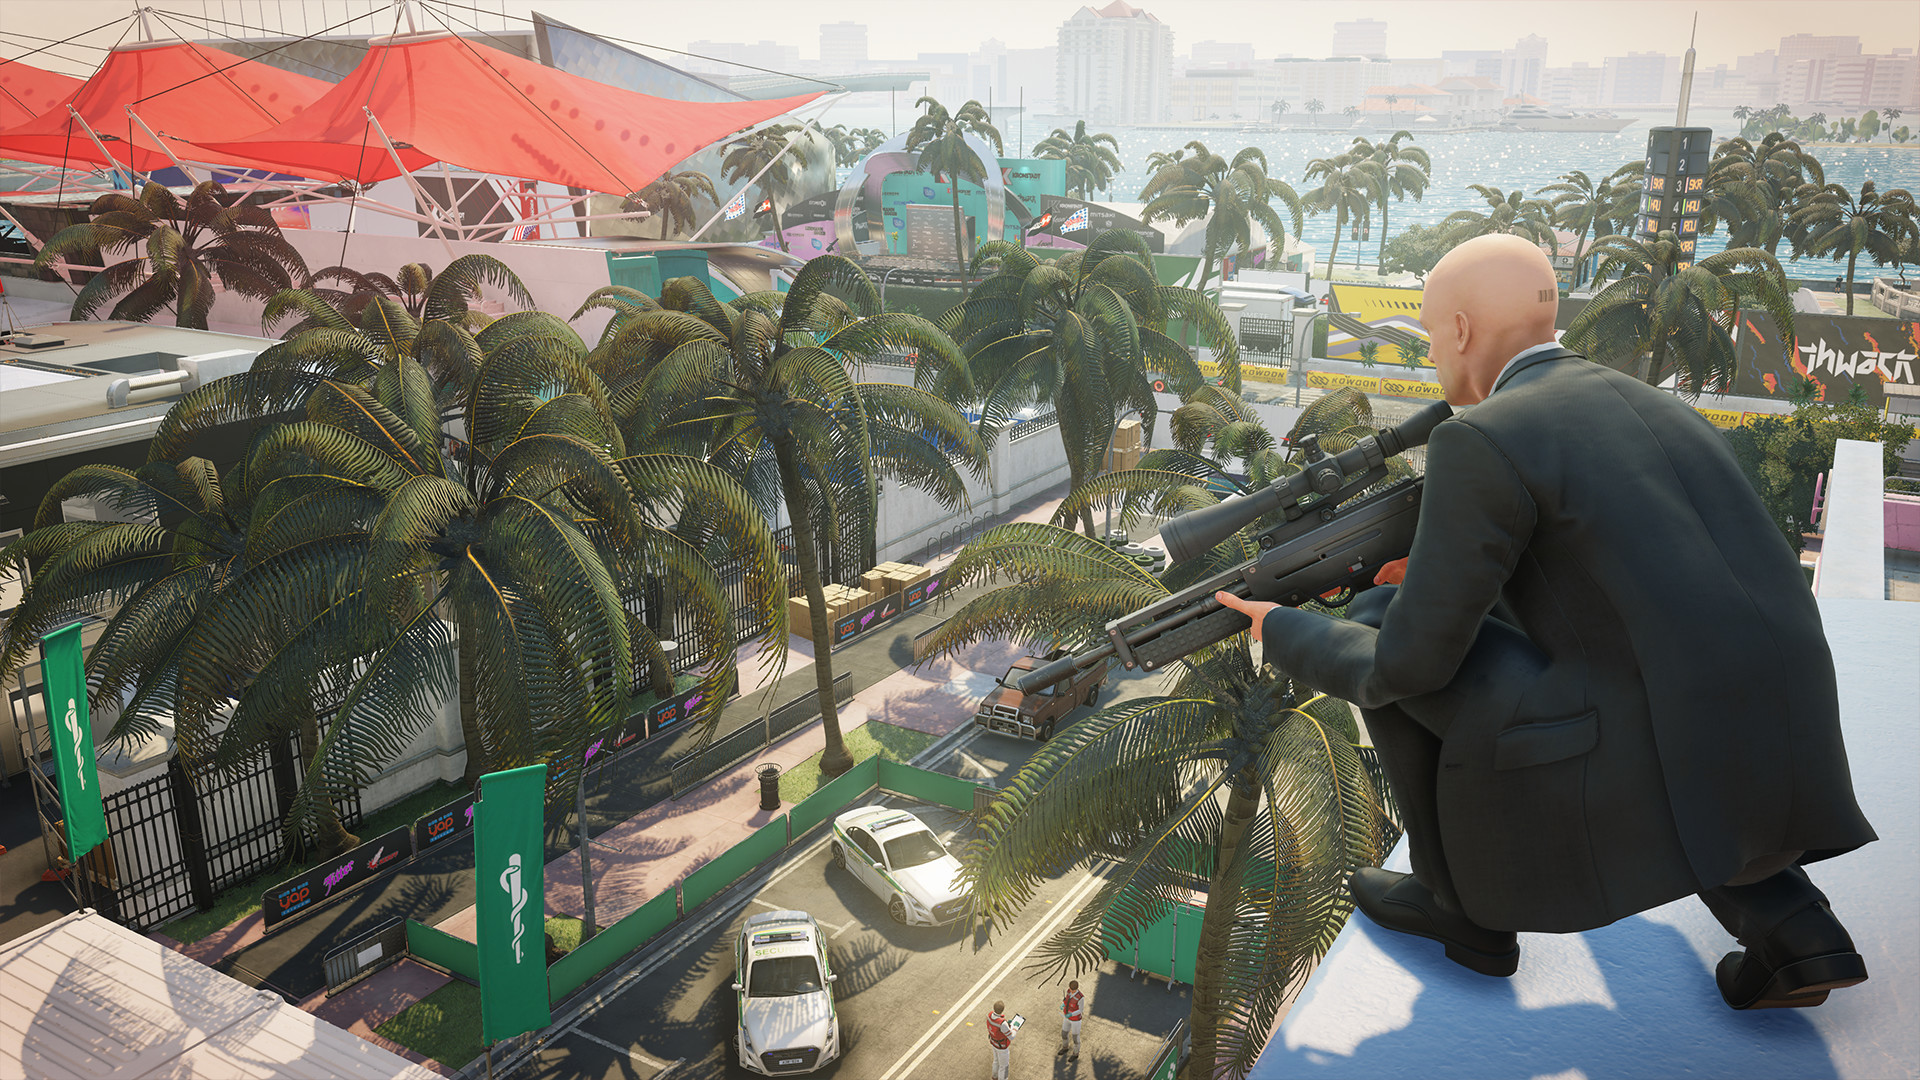 Hitman 2 officially announced for later this year, drops episodic format